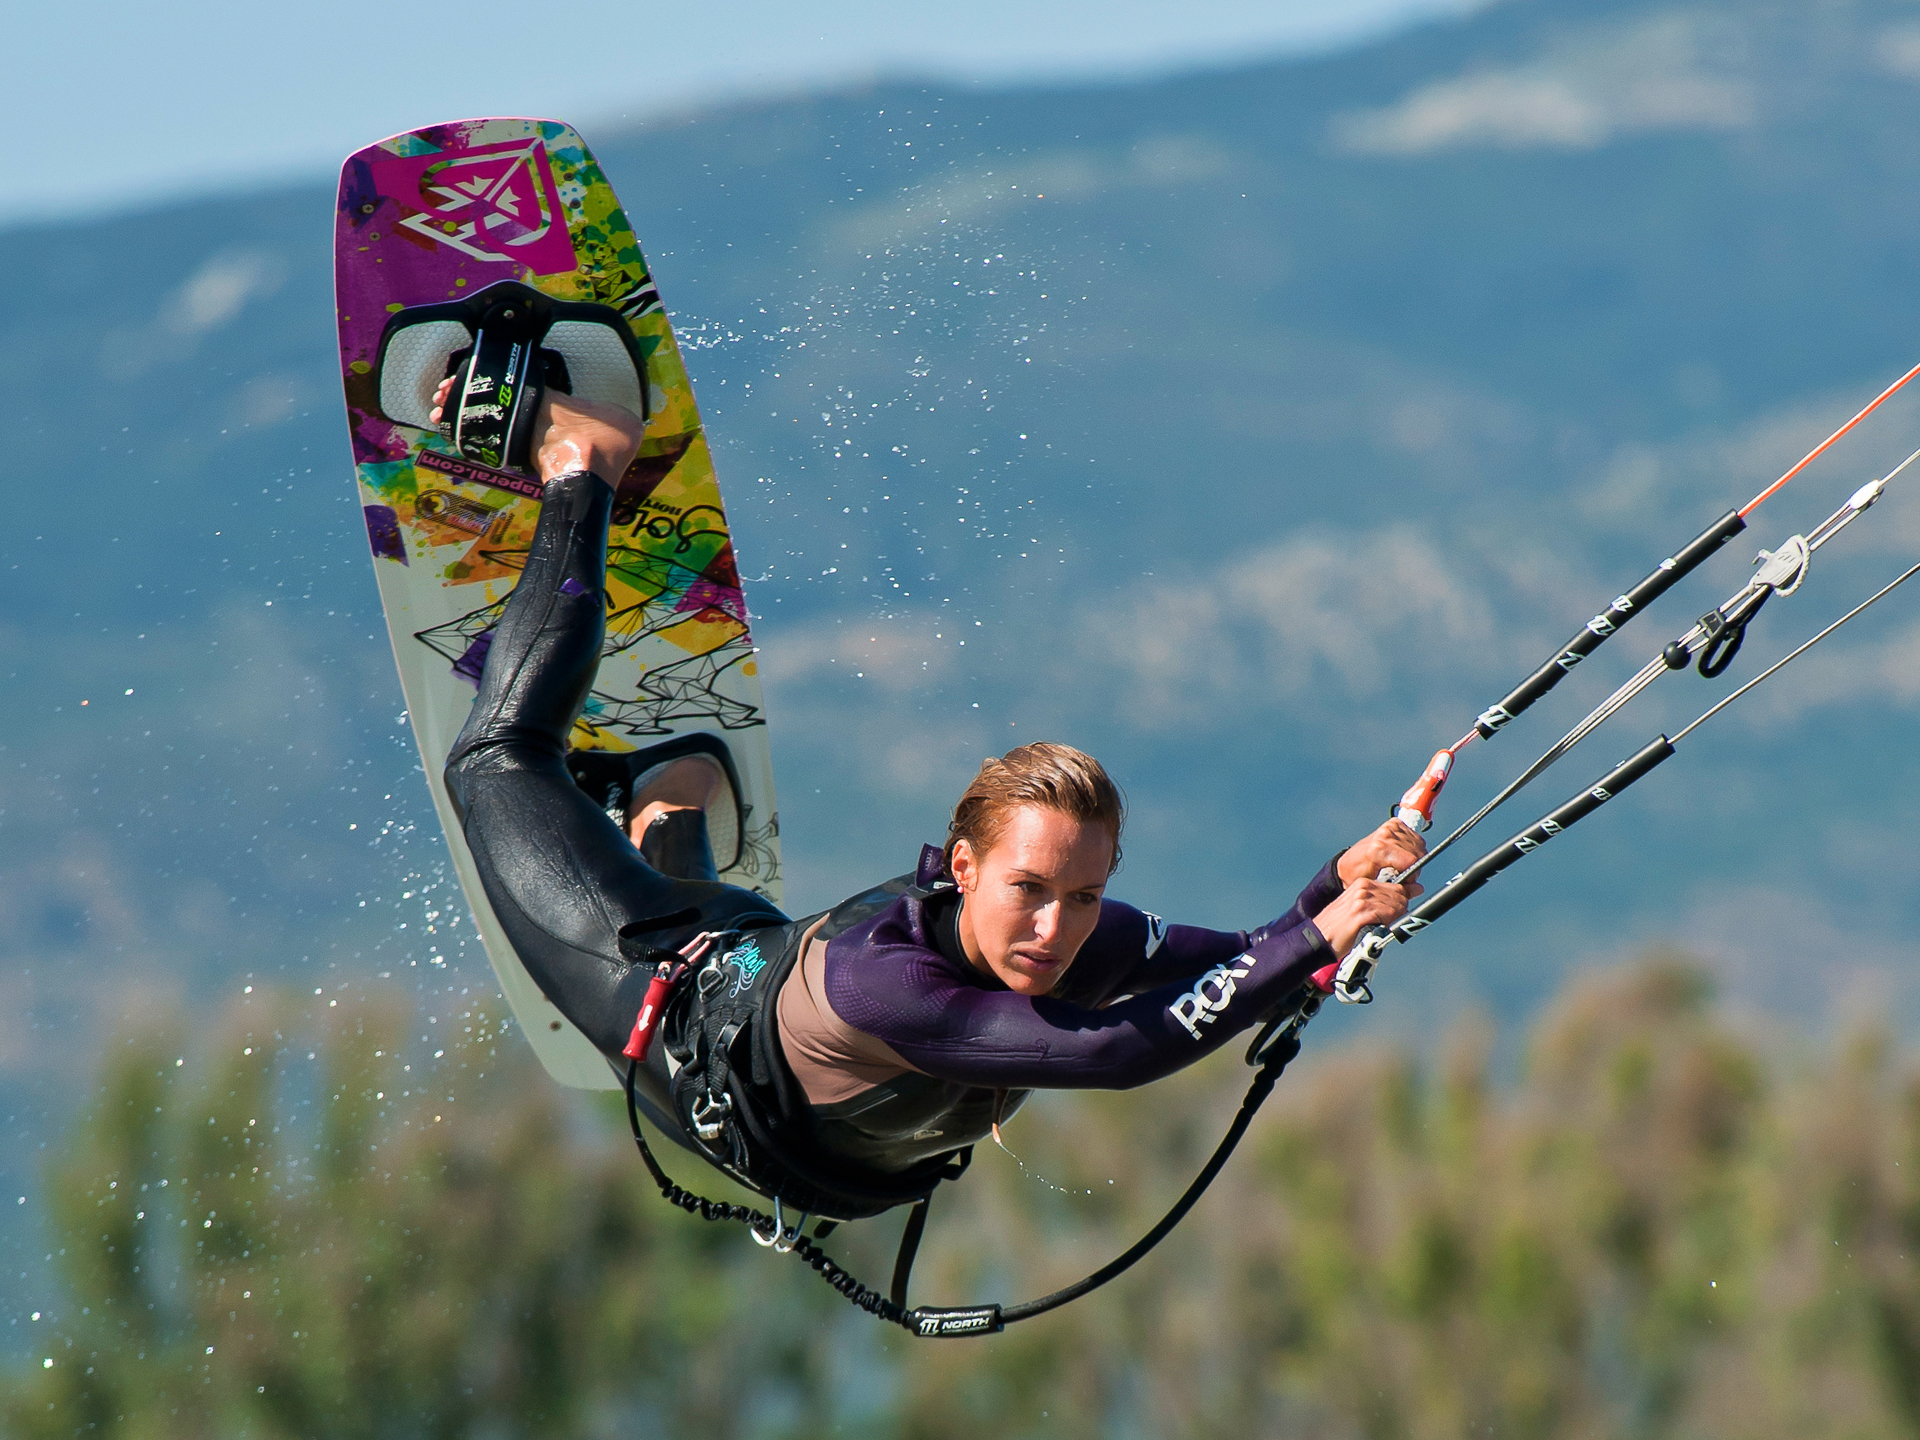 kitesurf wallpaper image - Angela Peral raily into town - in resolution: Standard 4:3 1920 X 1440